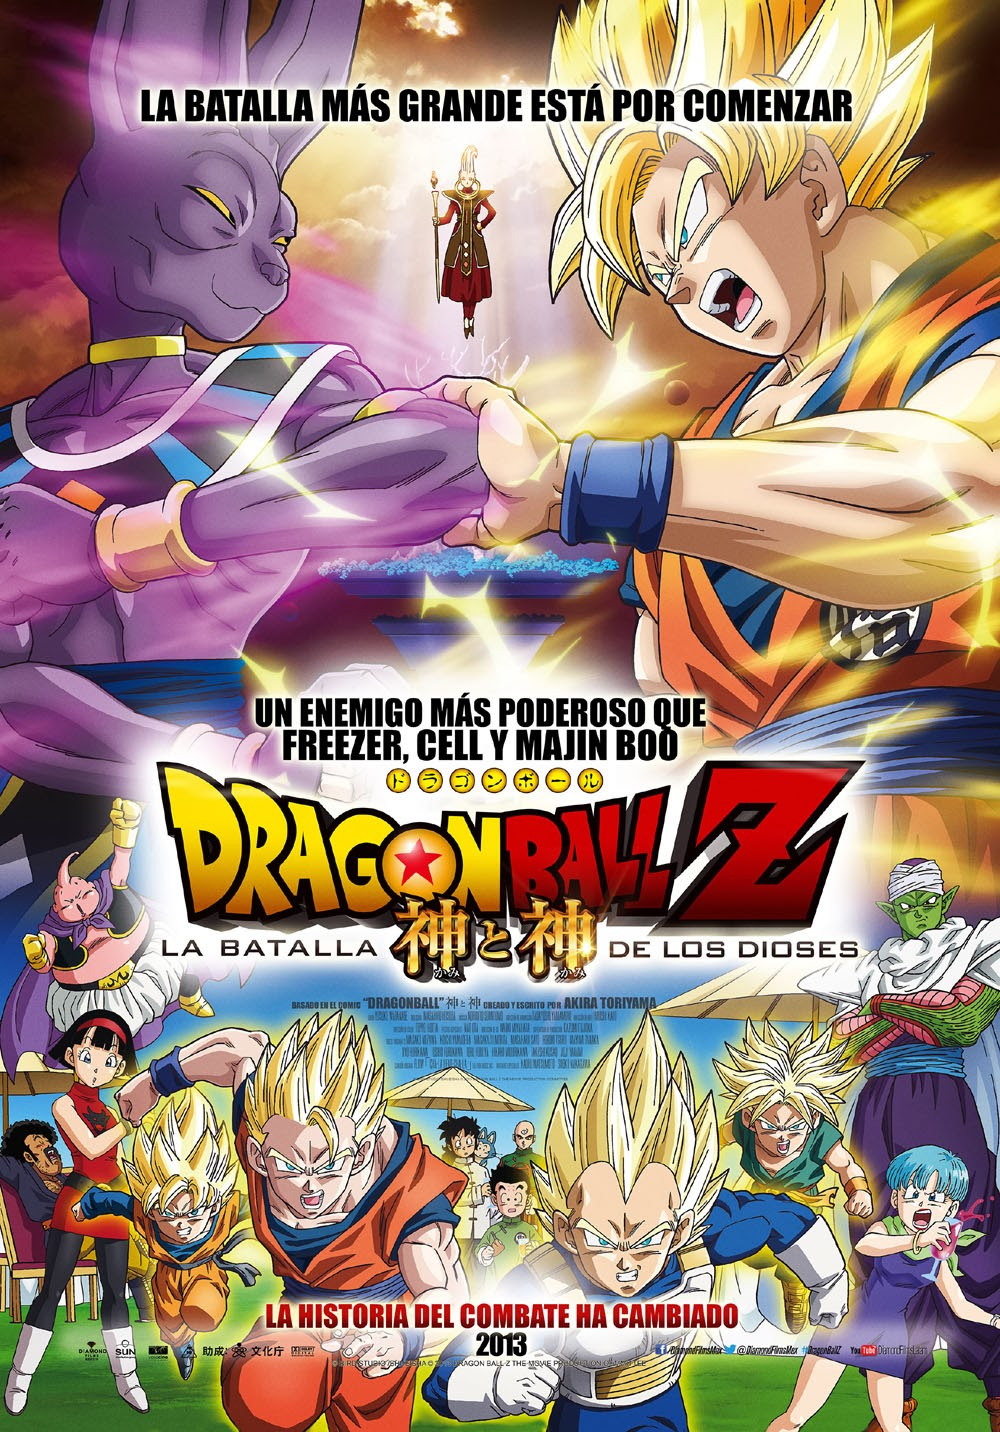 Dragon Ball Z: La Batalla de los Dioses - (2013) - Review Pr